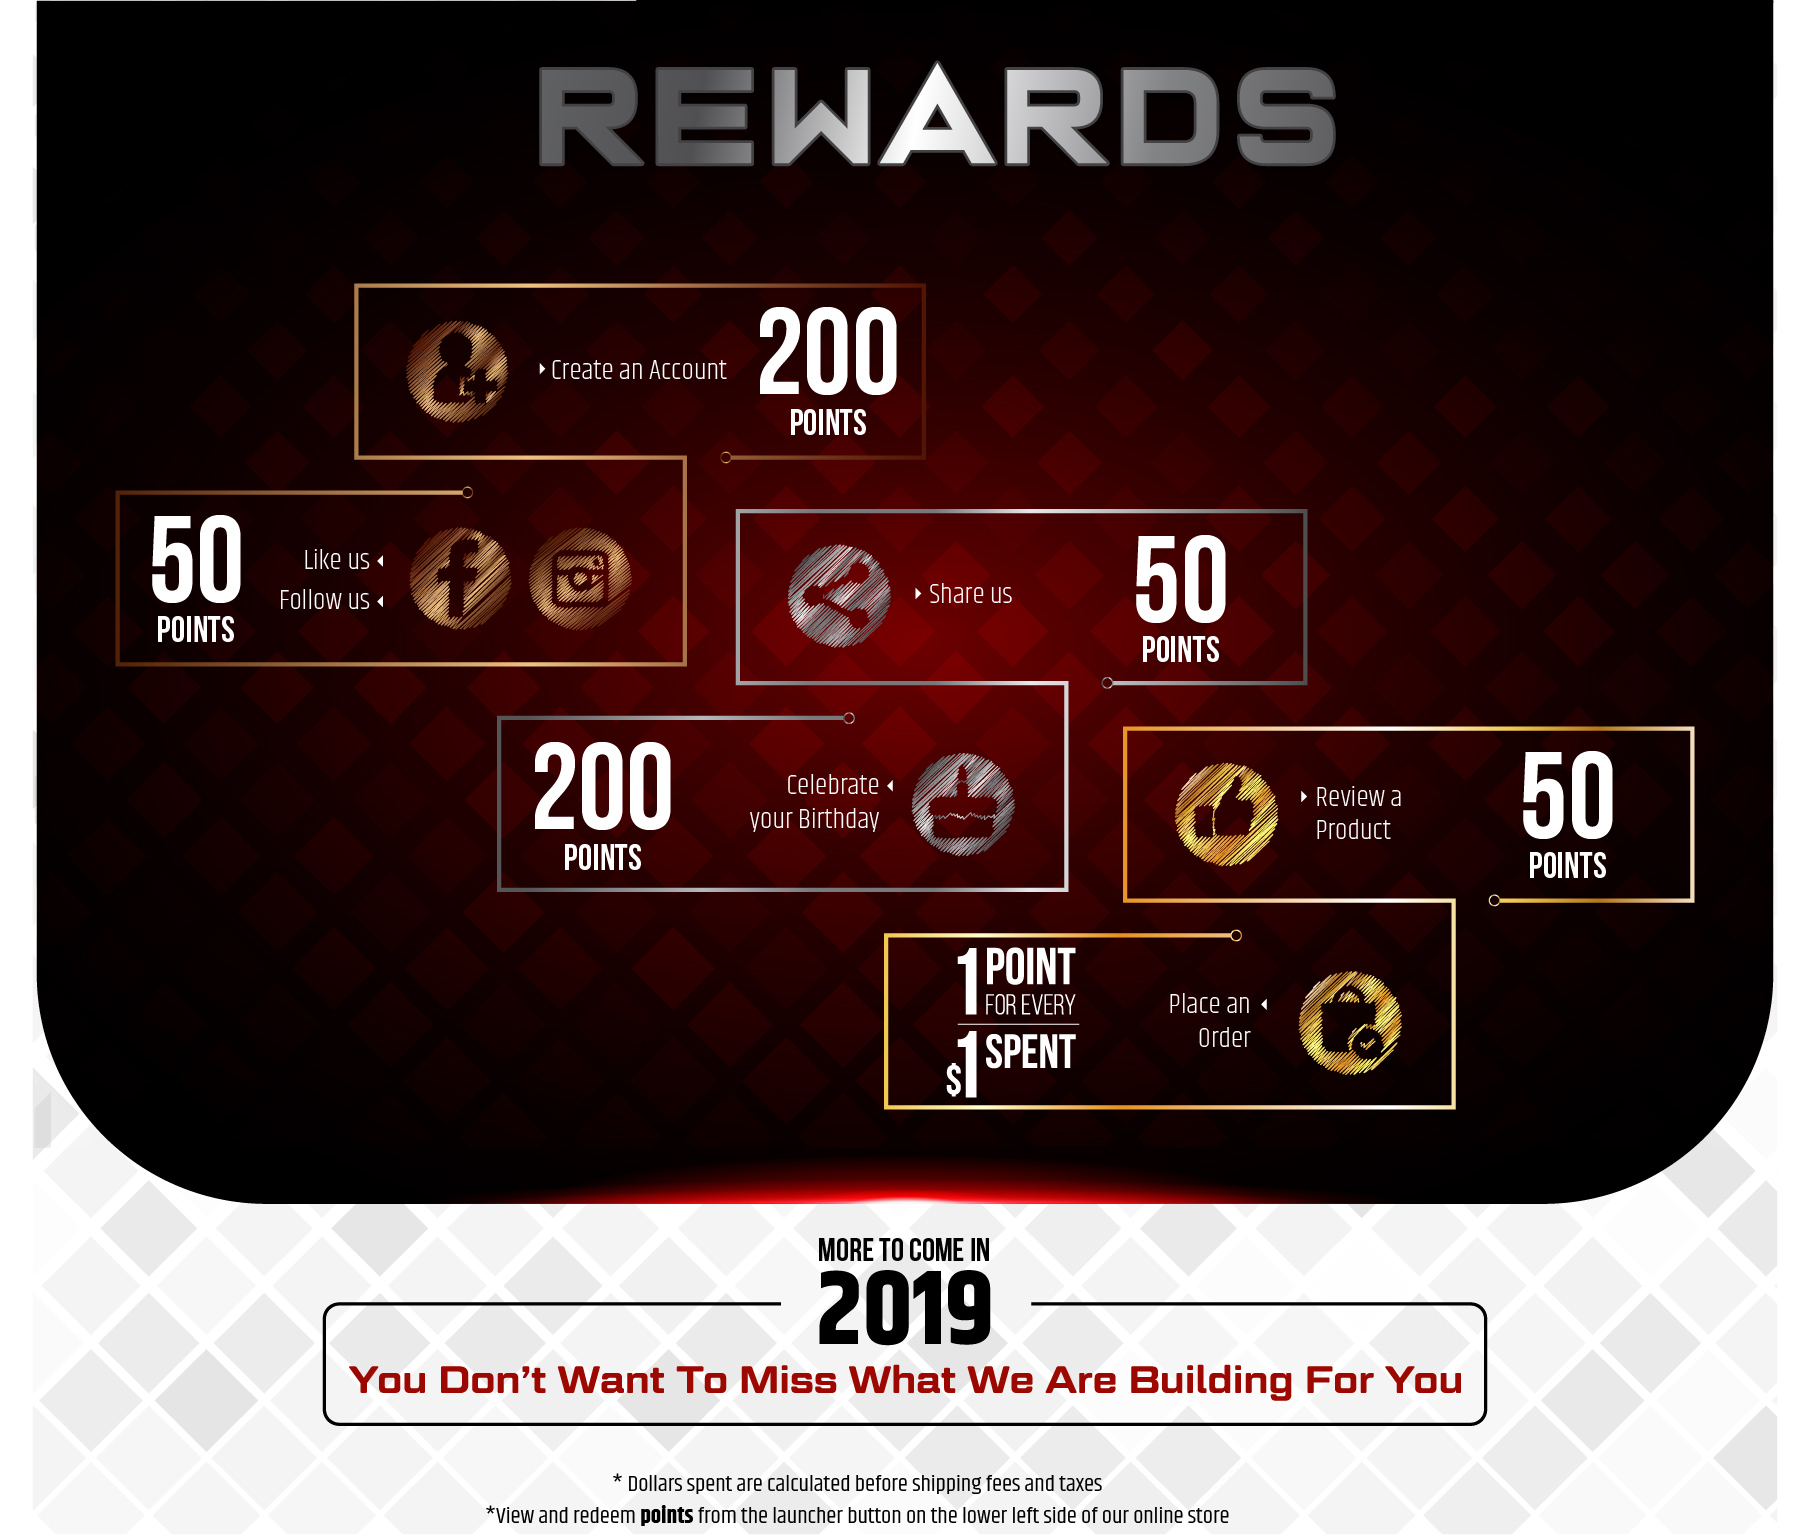 rewards-for-website2-06.jpg